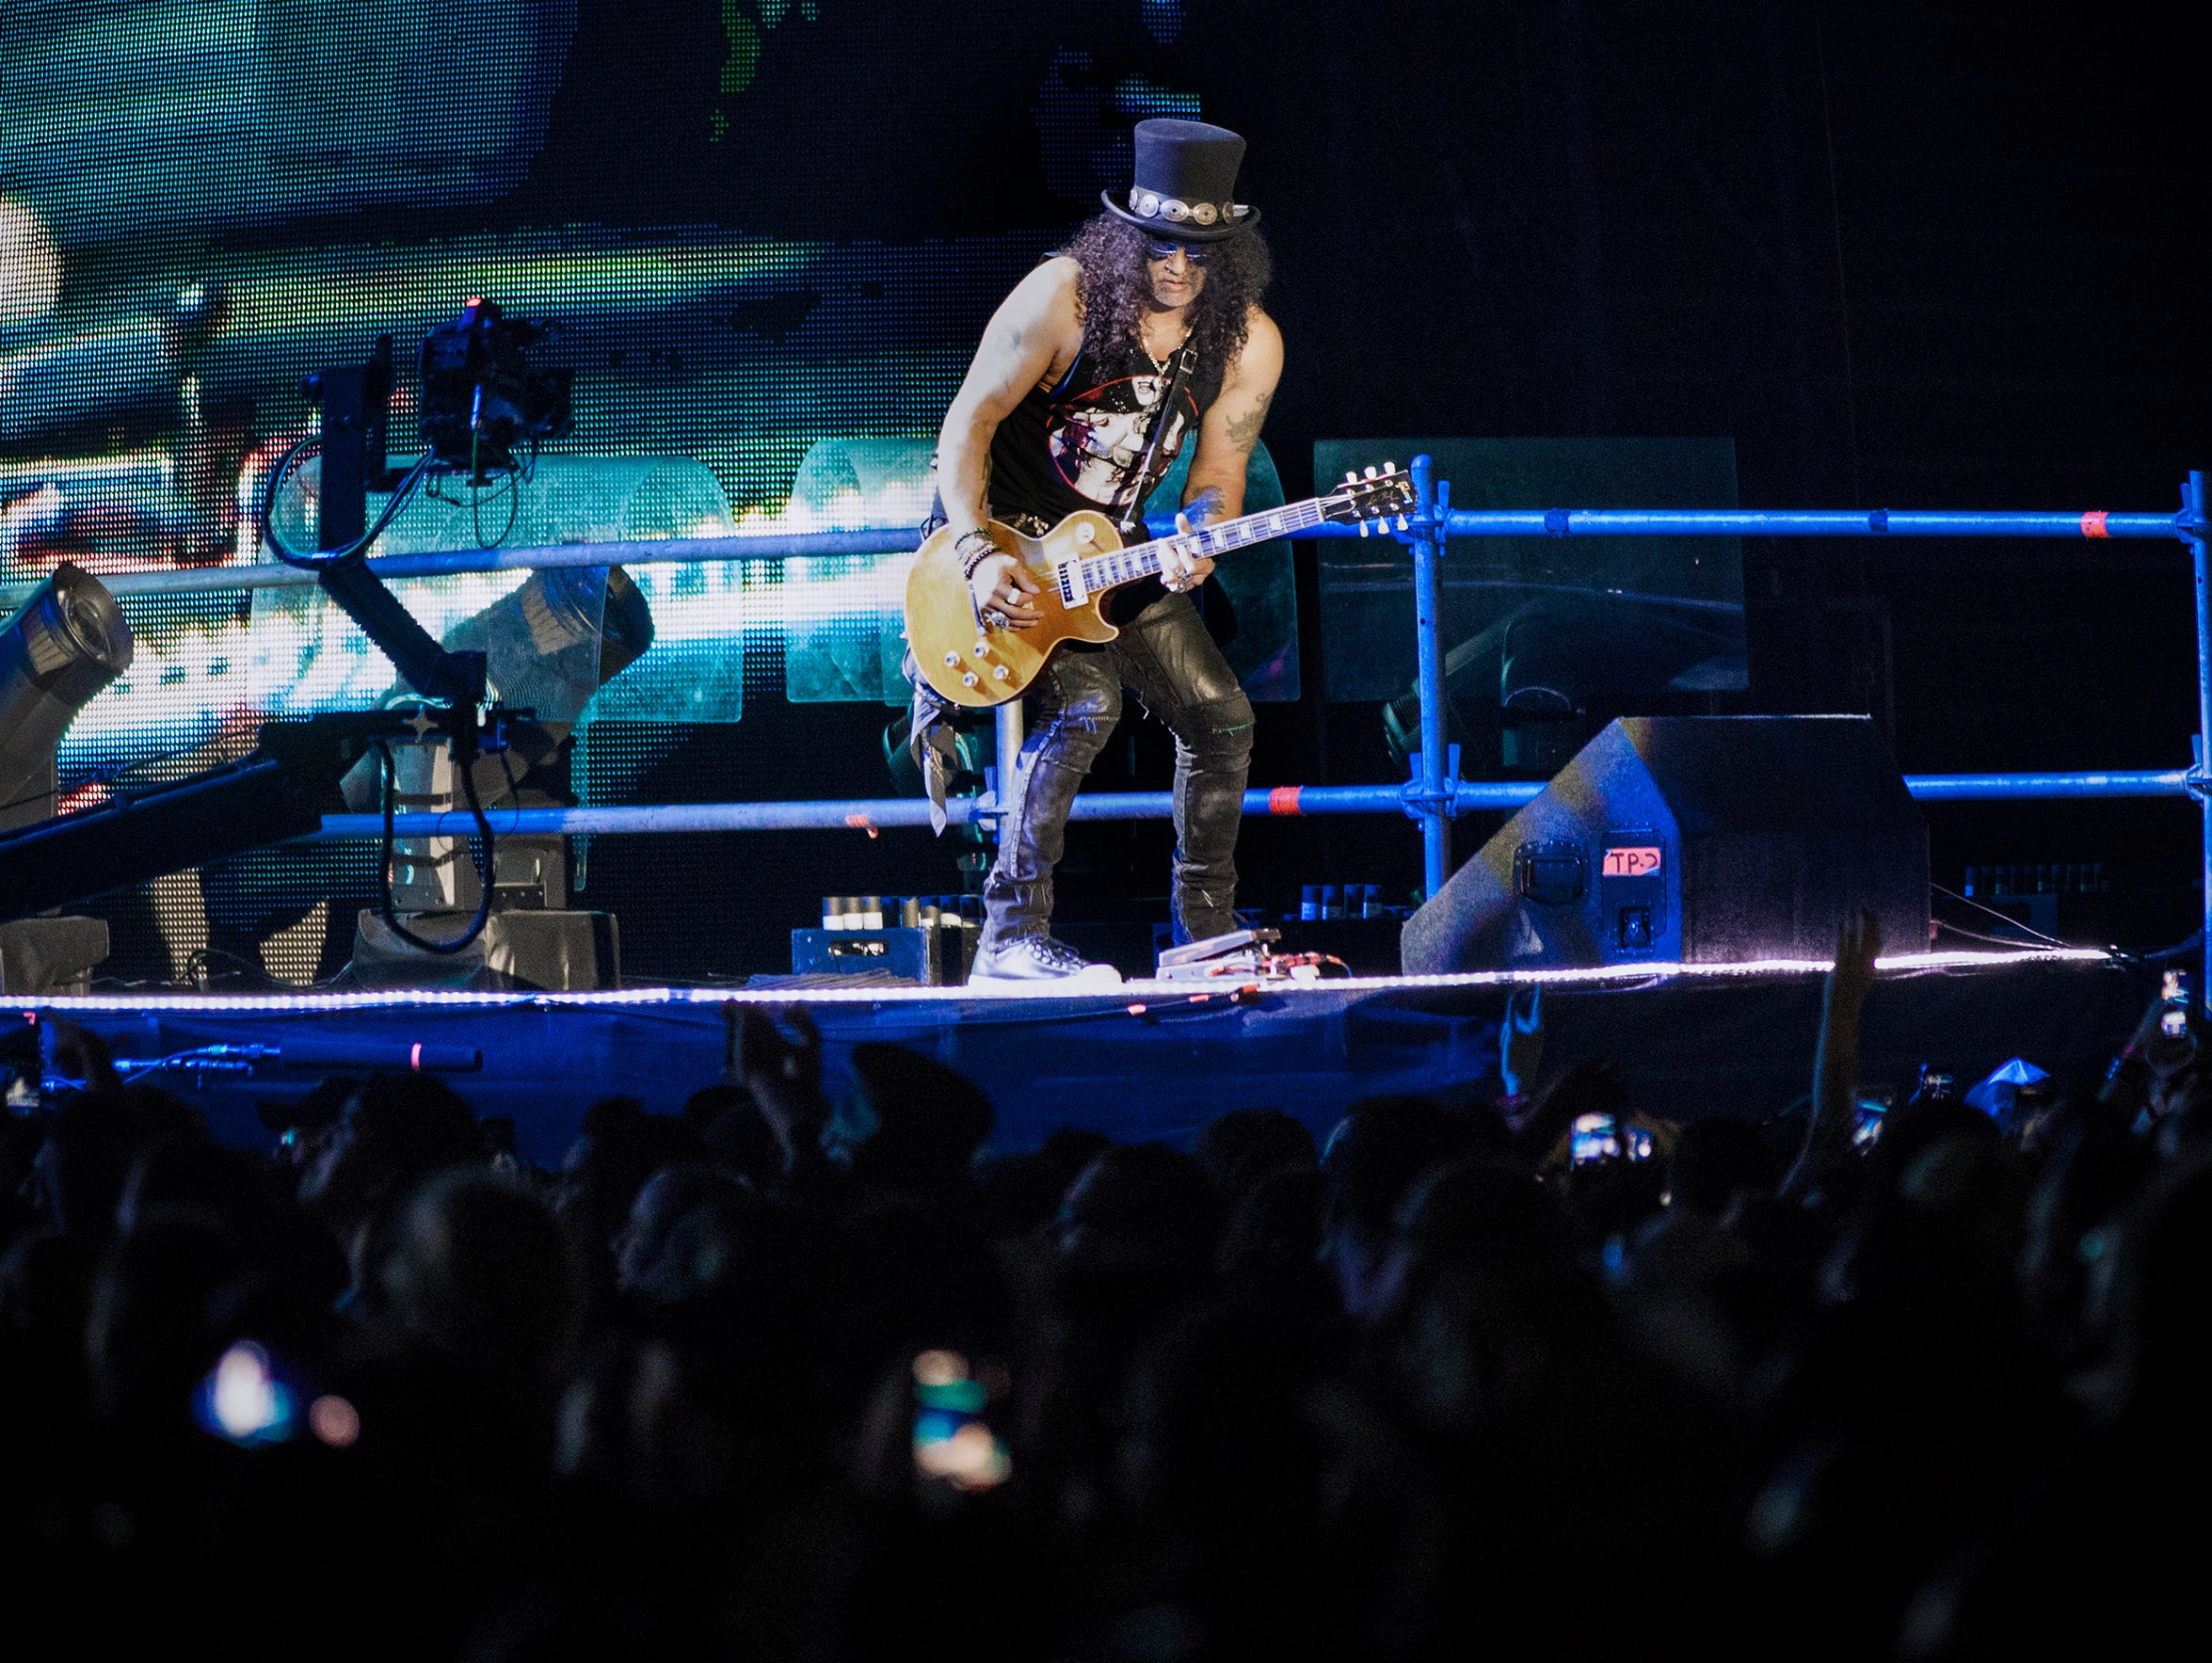 Guns N' Roses plays to a near sellout crowd at the